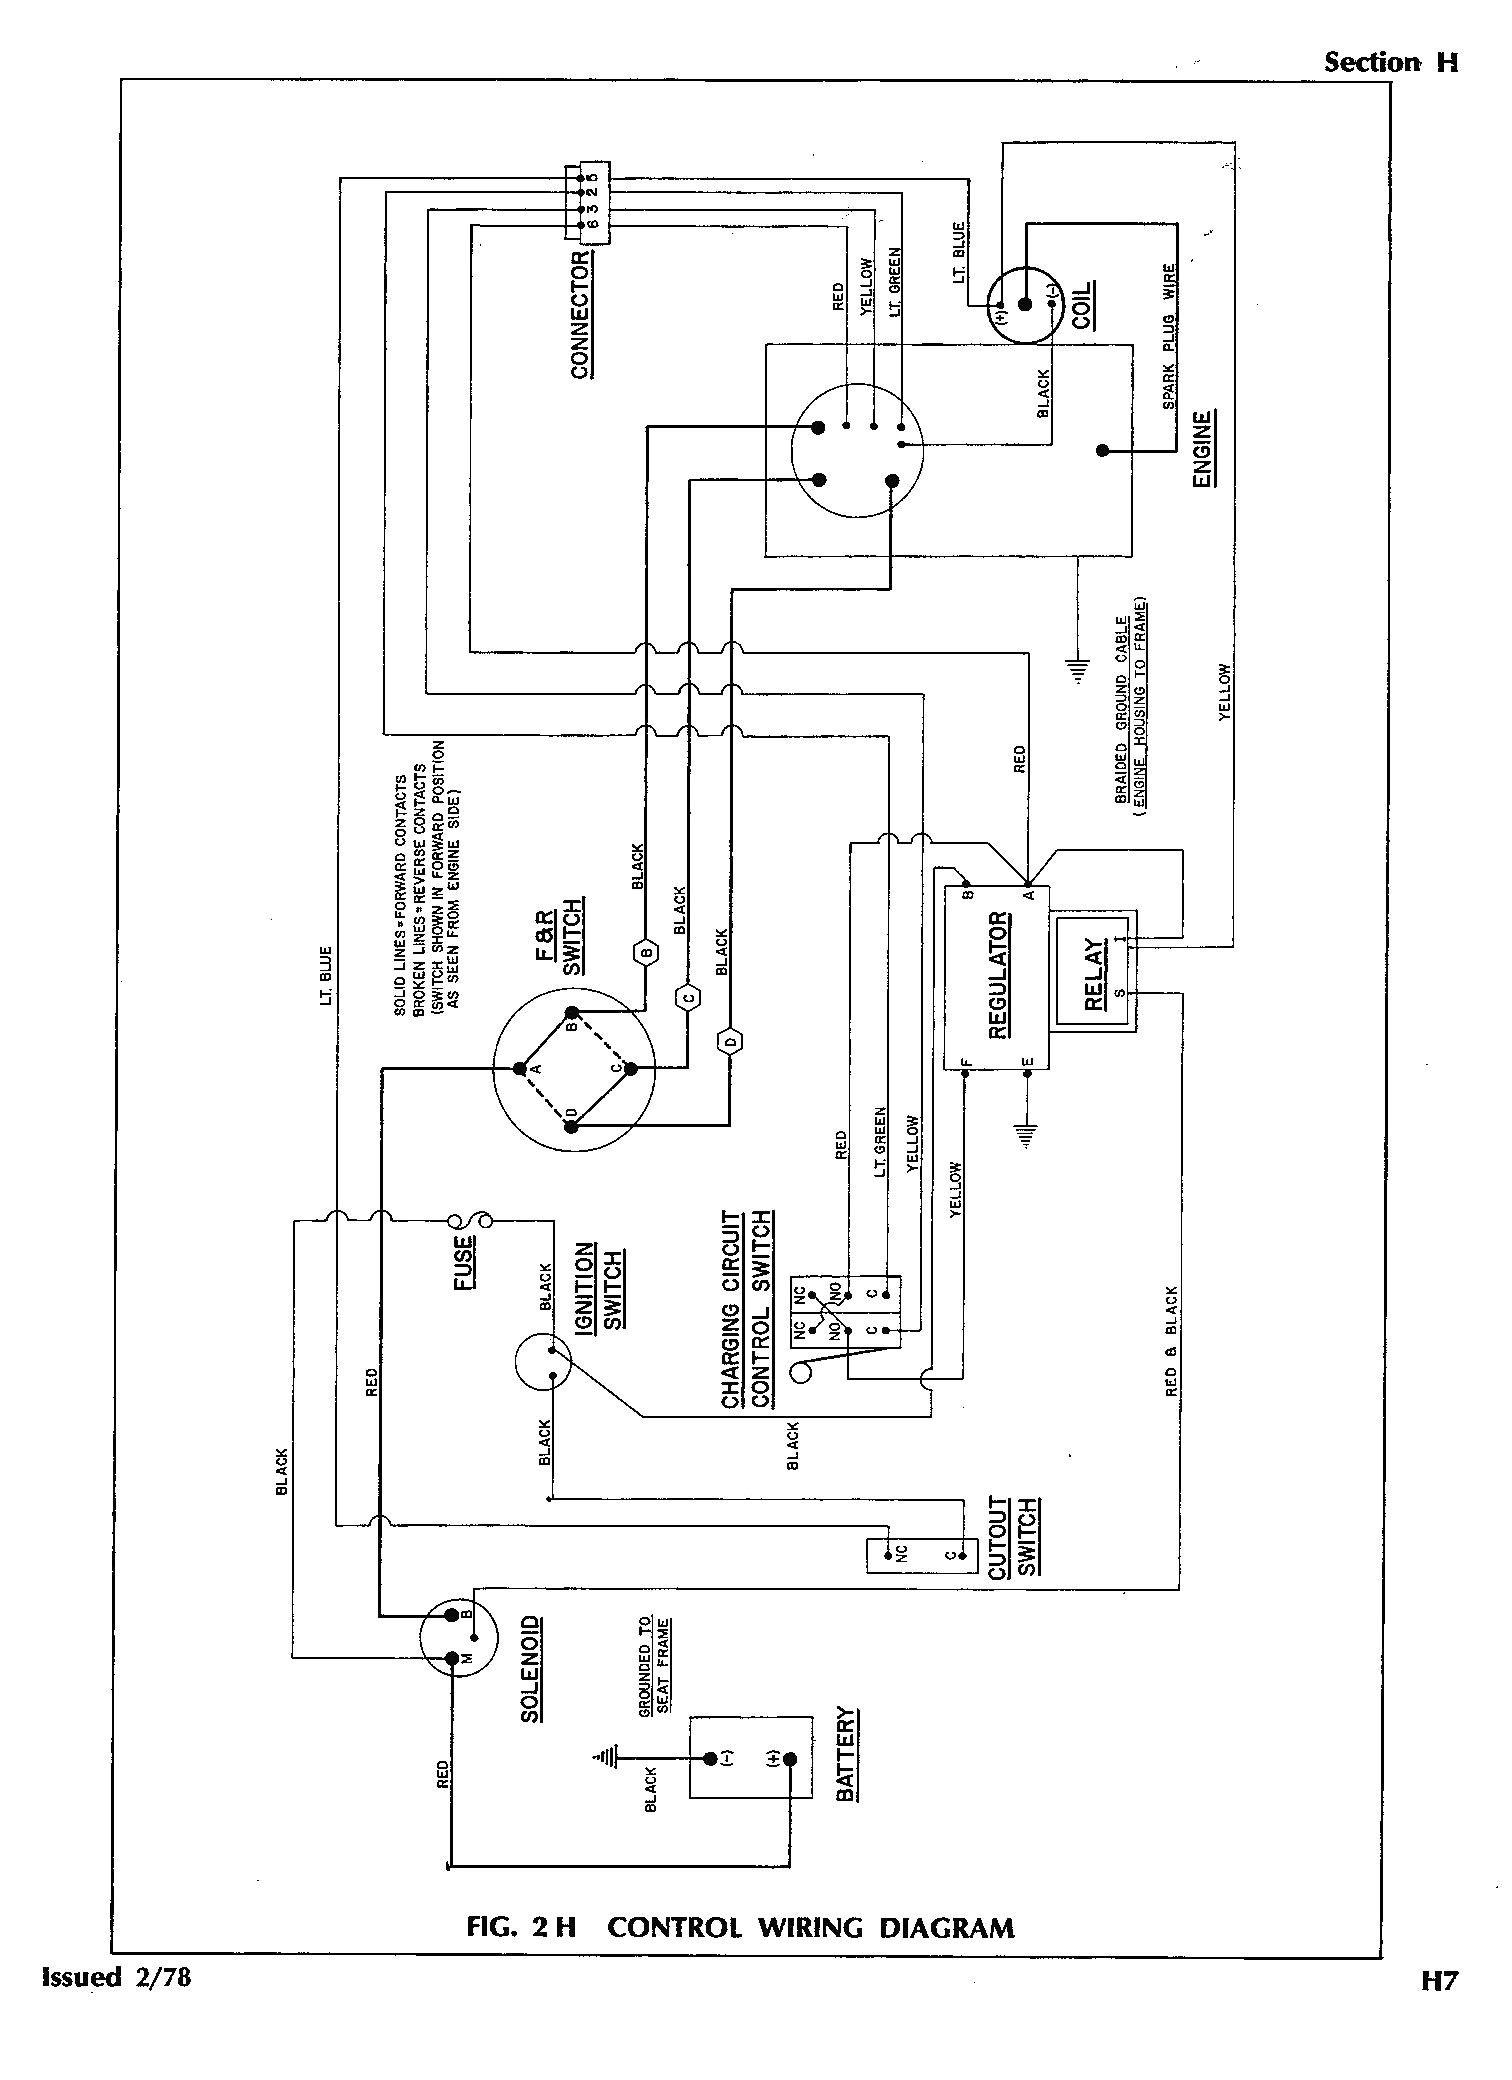 New Wiring Diagram For 2006 Club Car Precedent 48 Volt